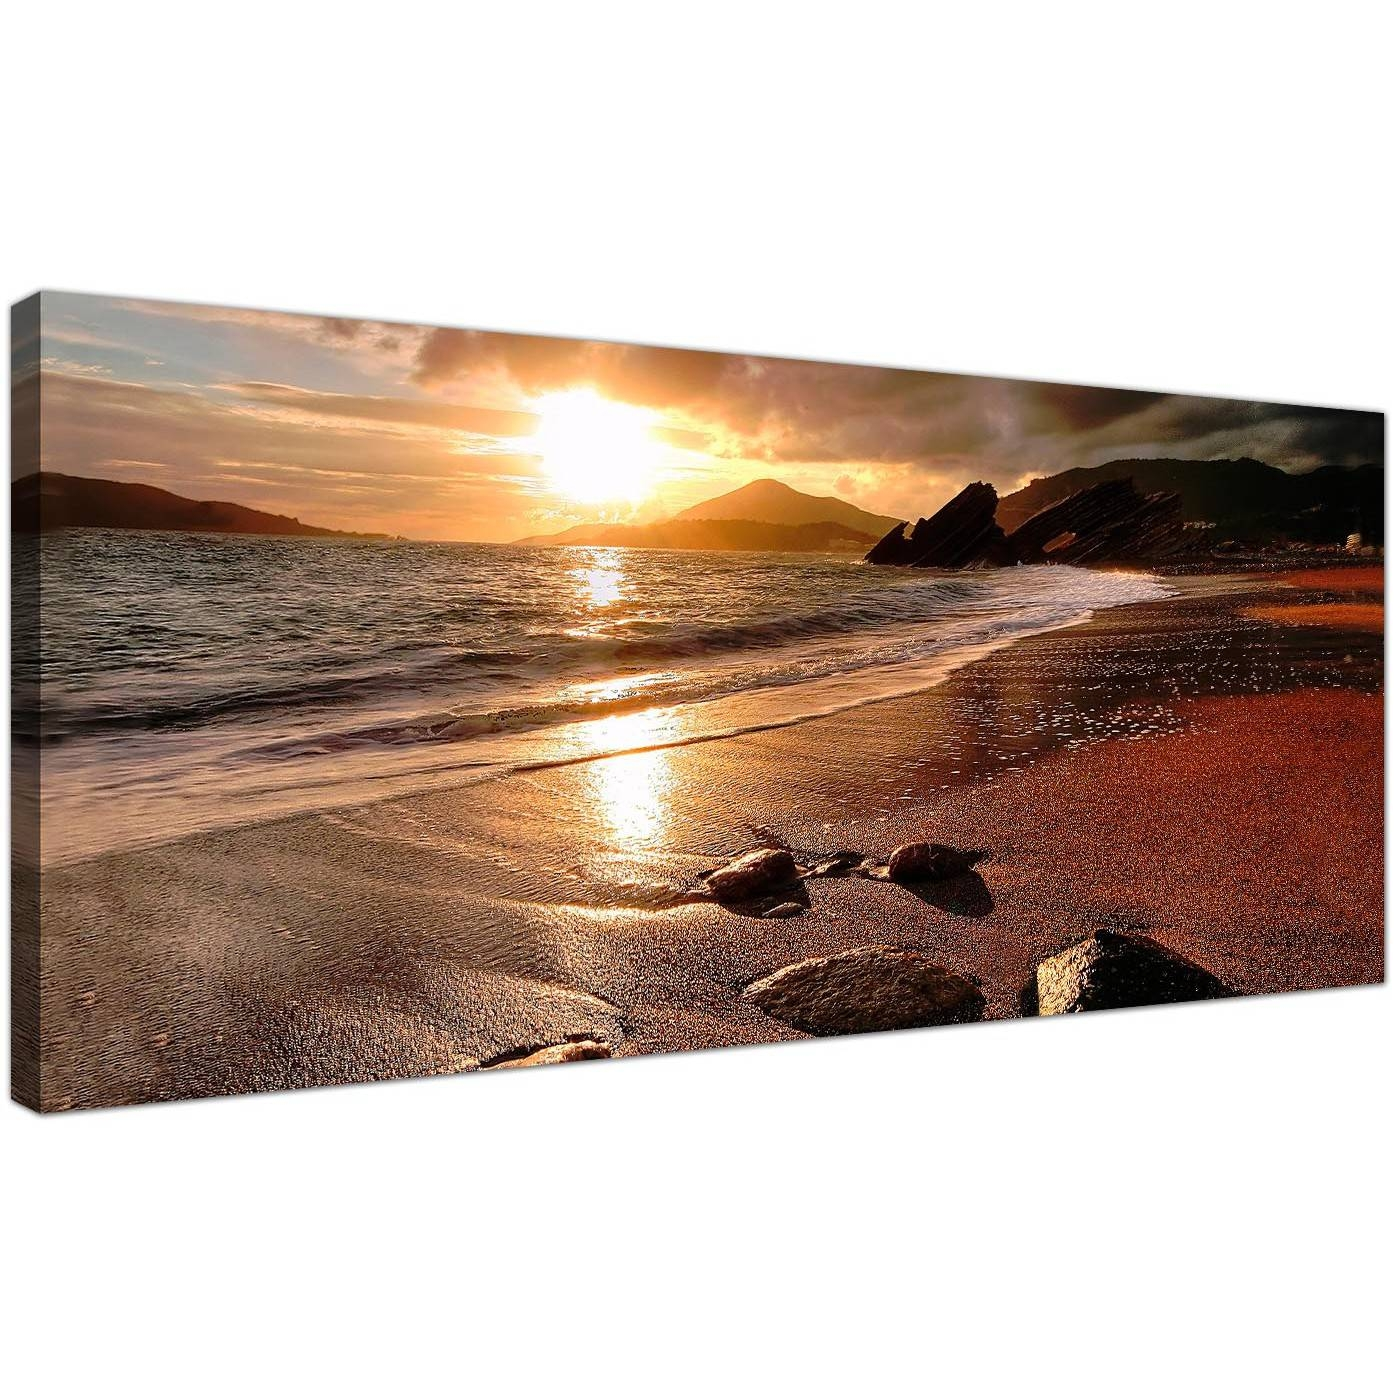 Wide Canvas Prints Of A Beach Sunset For Your Living Room In Latest Huge Canvas Wall Art (View 4 of 15)